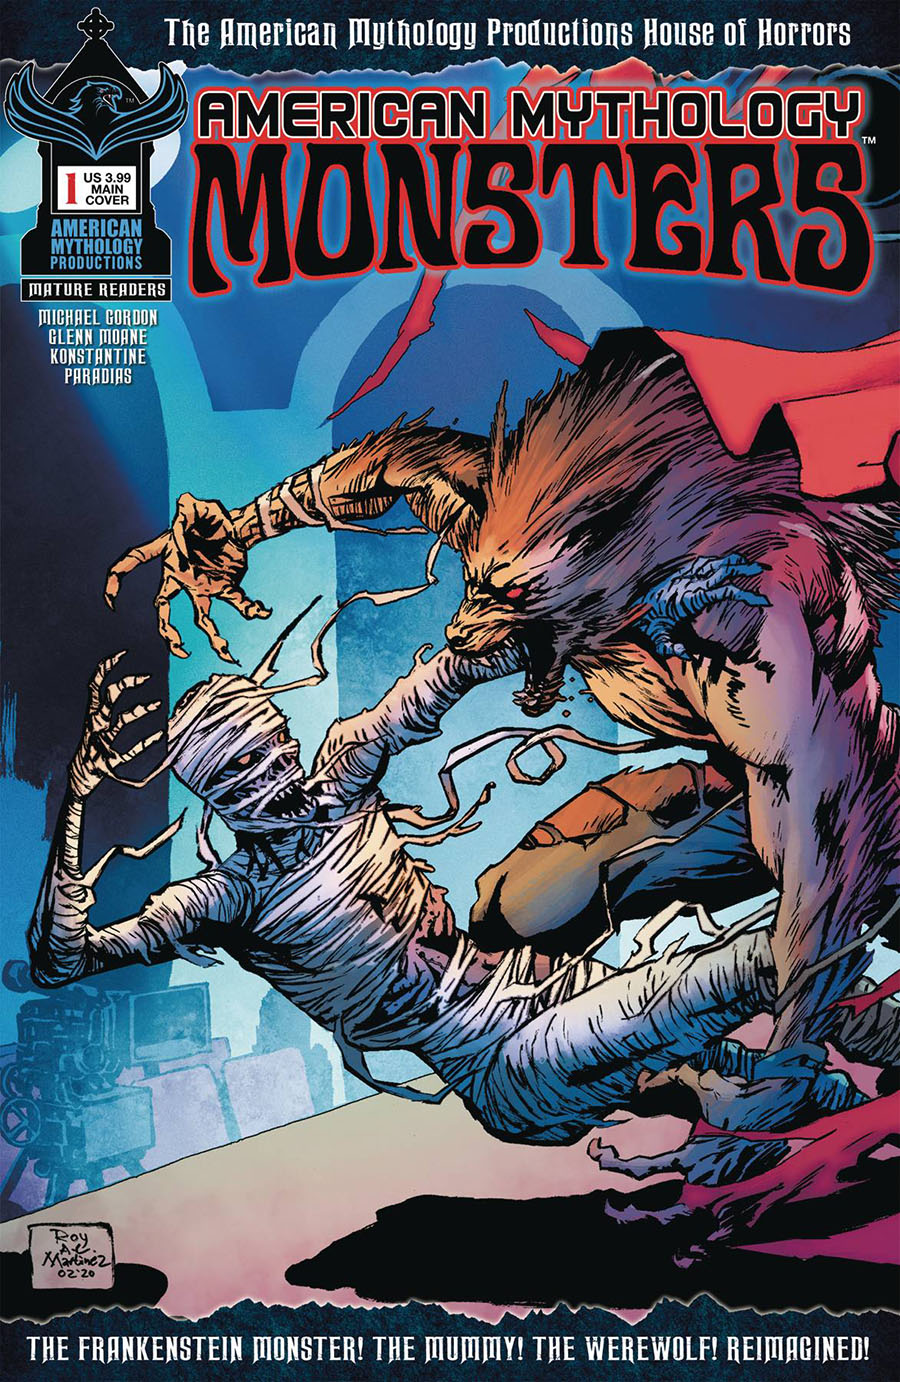 American Mythology: Monsters #1 (2021)